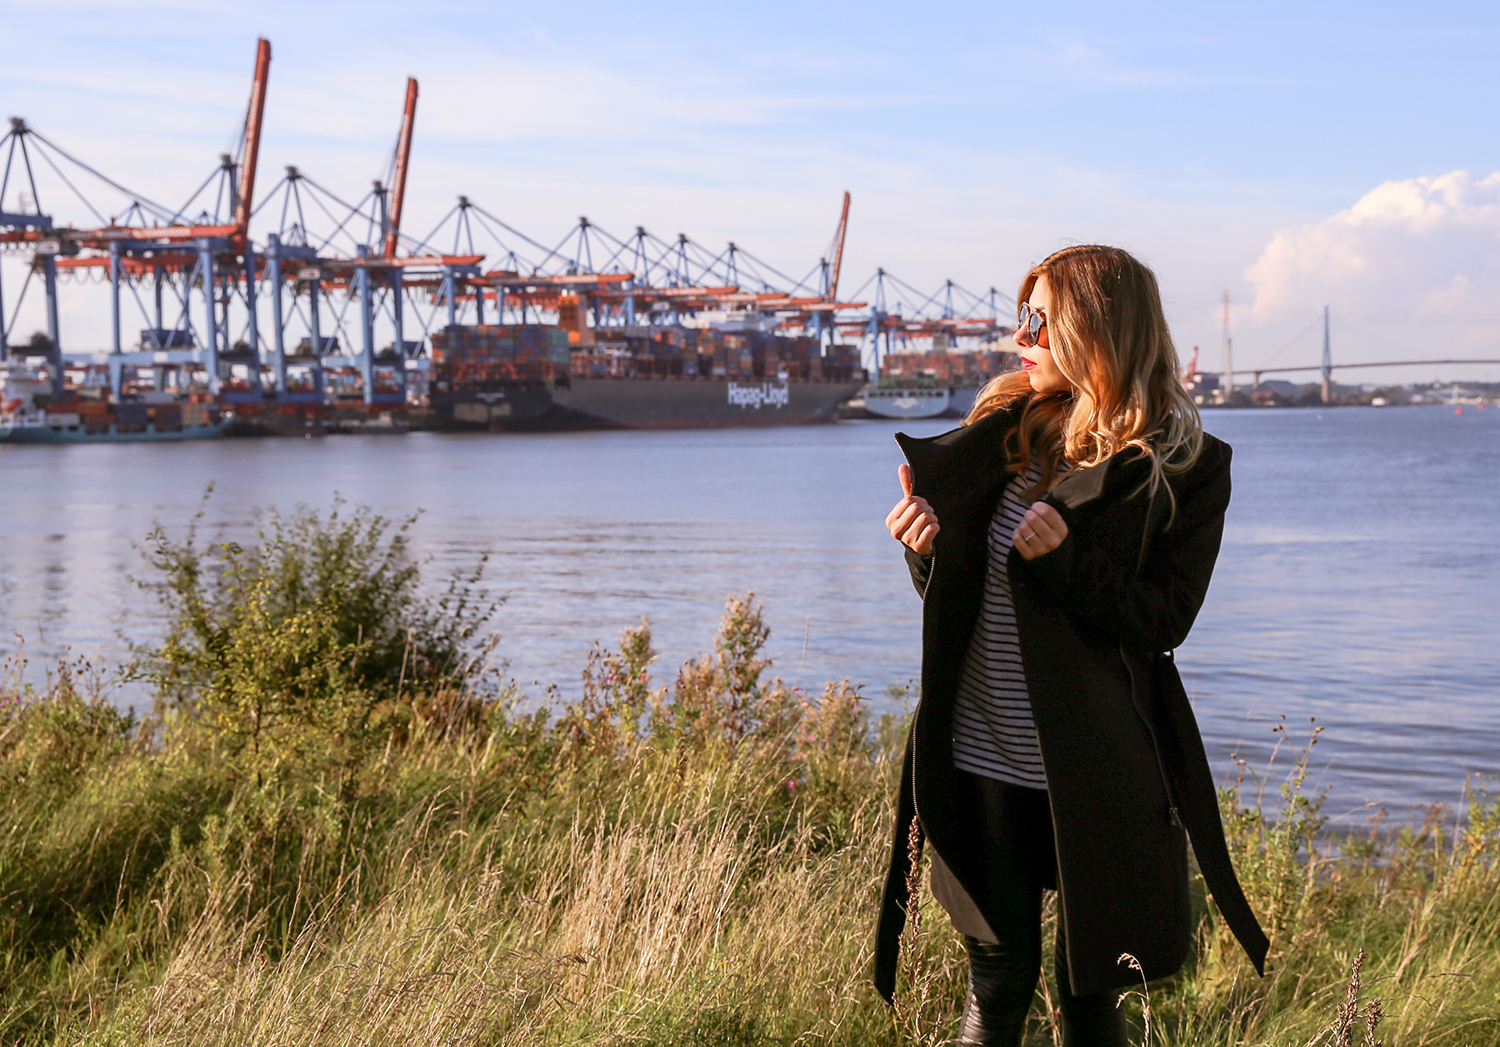 edited_coat_Fall_Luisa_Hamburg_Harbor